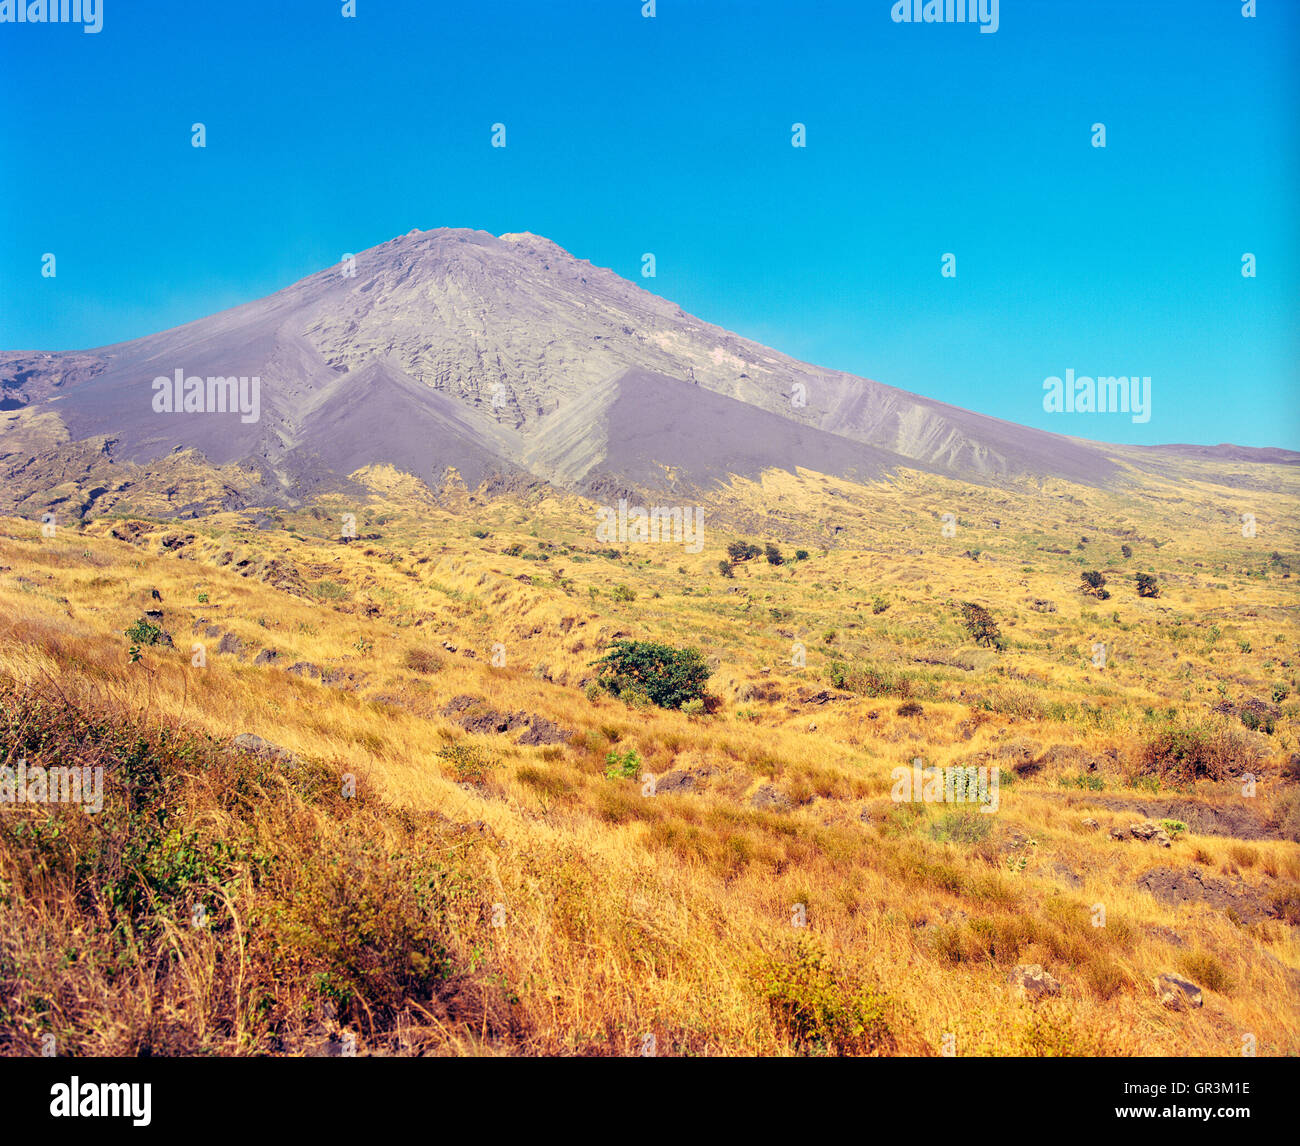 Pico de Fogo. Fogo, Cape Verde Islands, Africa. - Stock Image